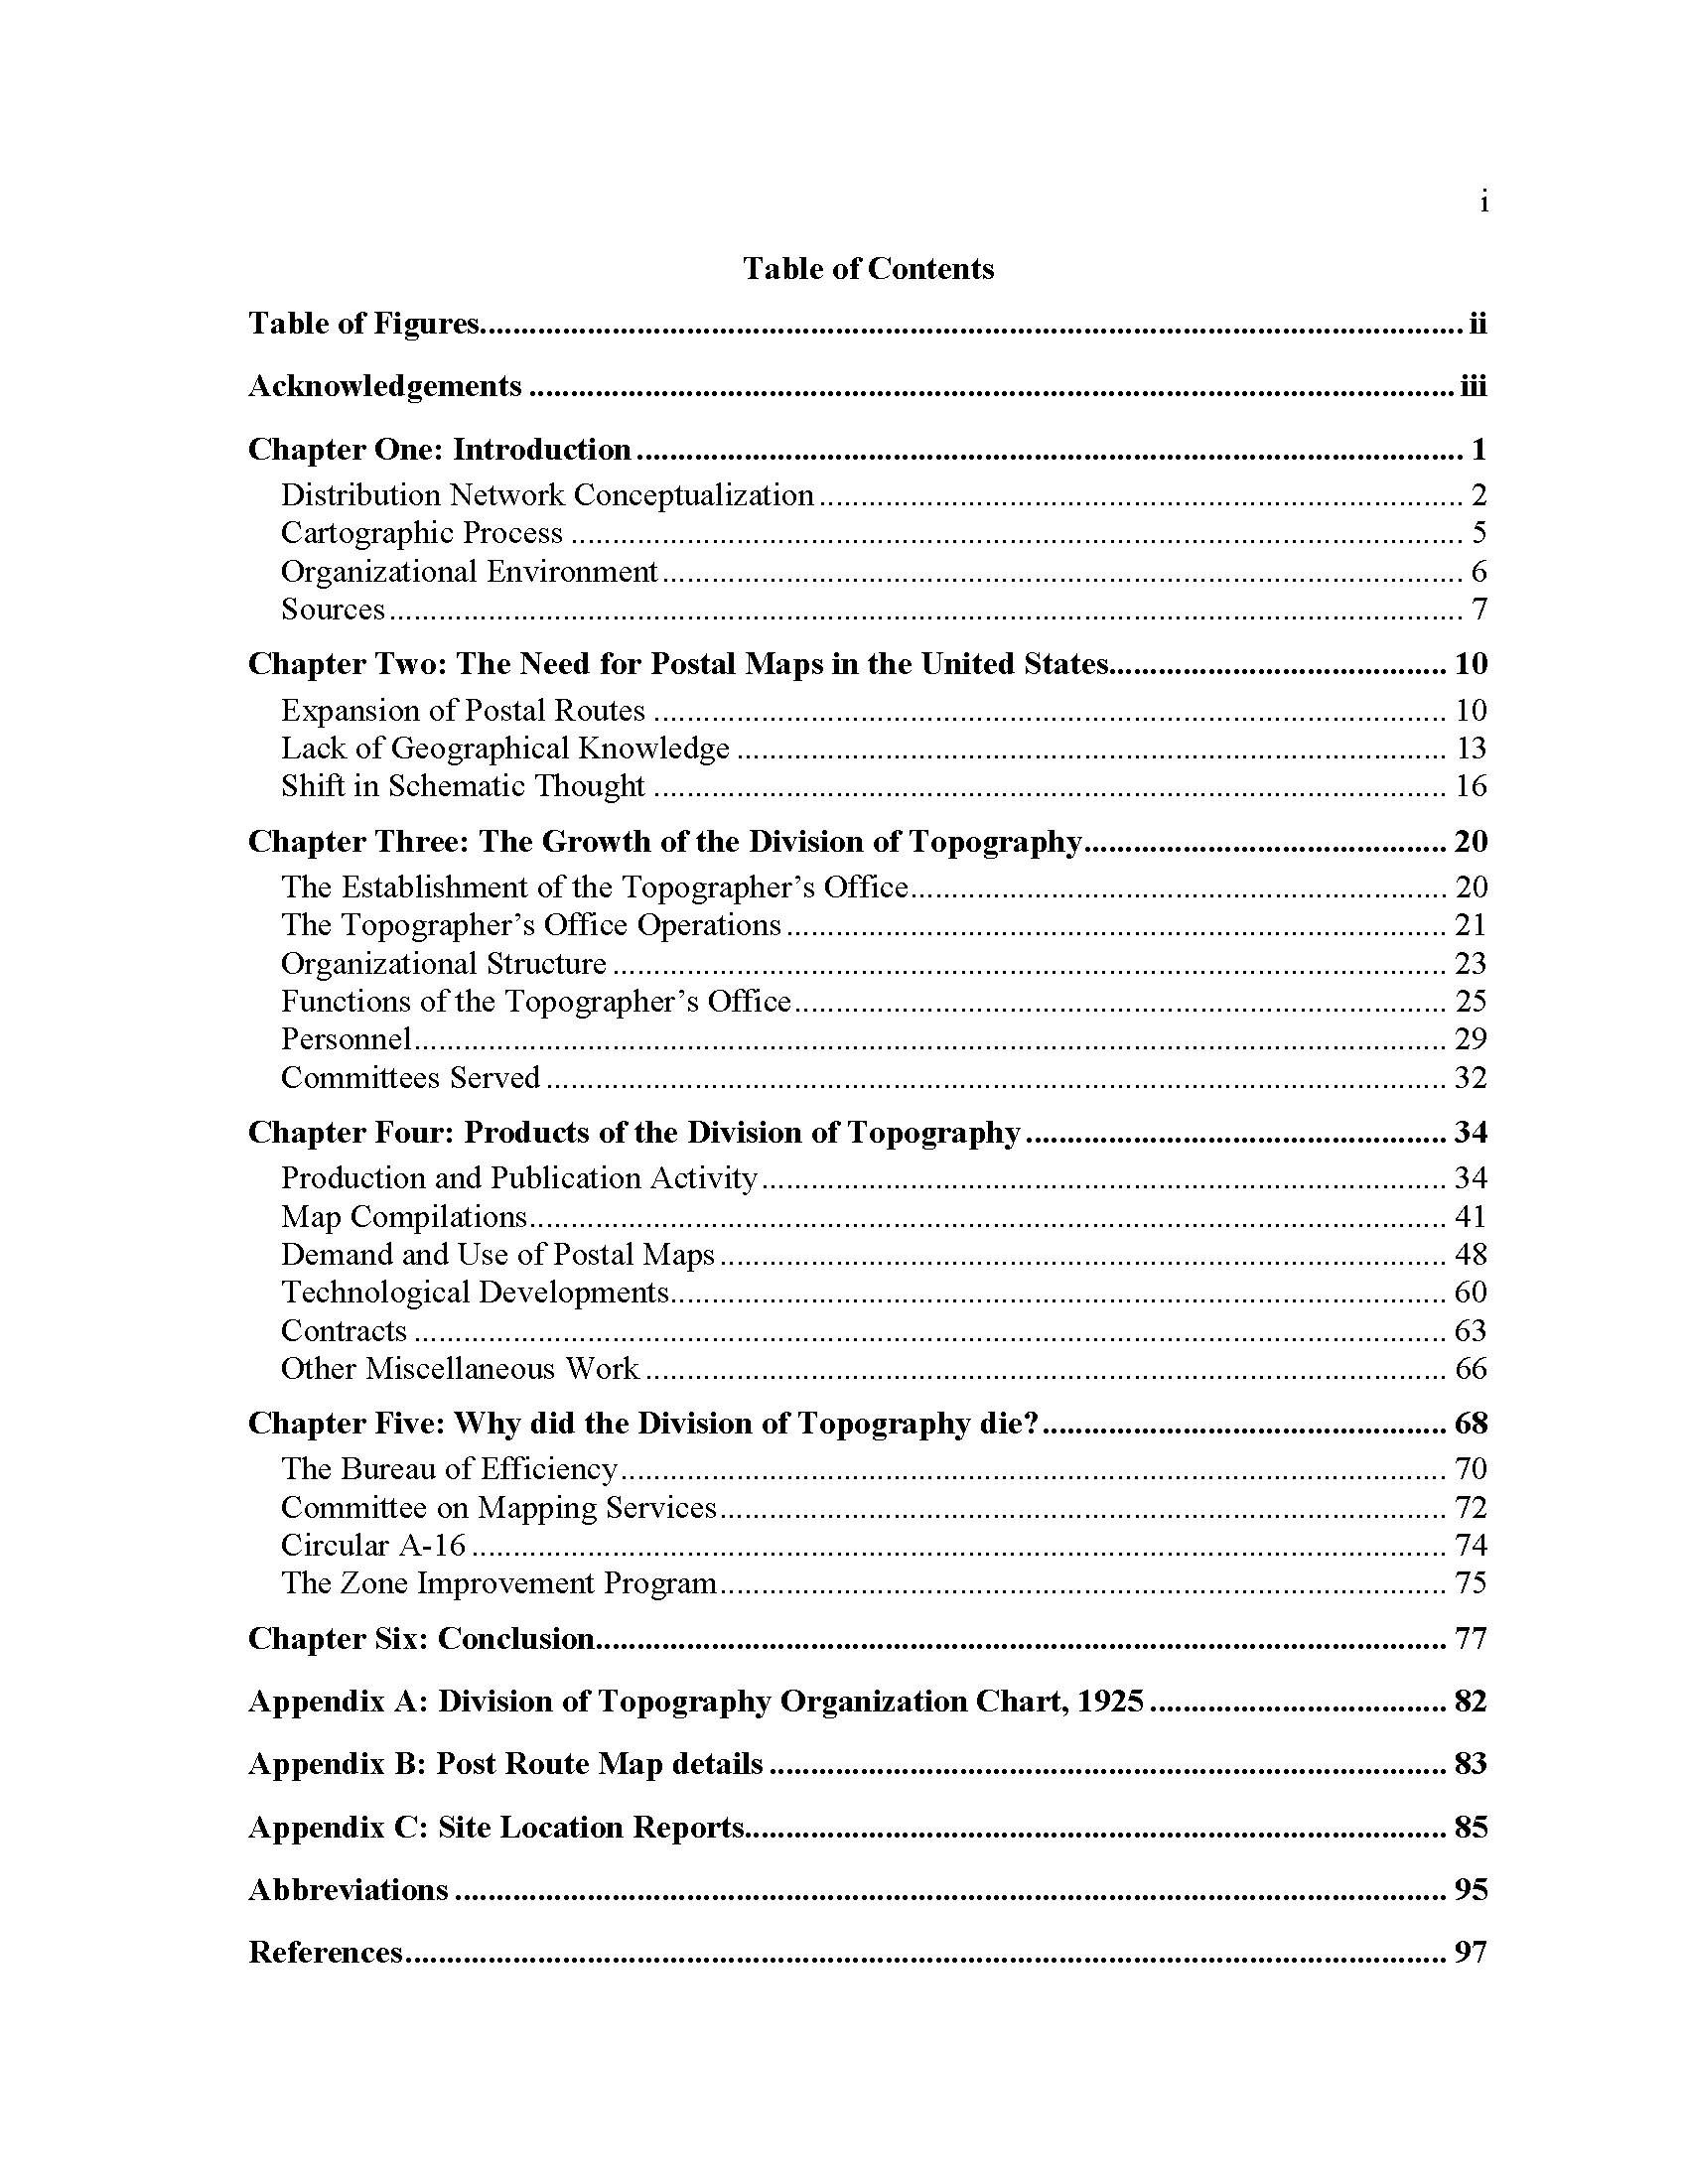 Thesis Final_Page_002.png